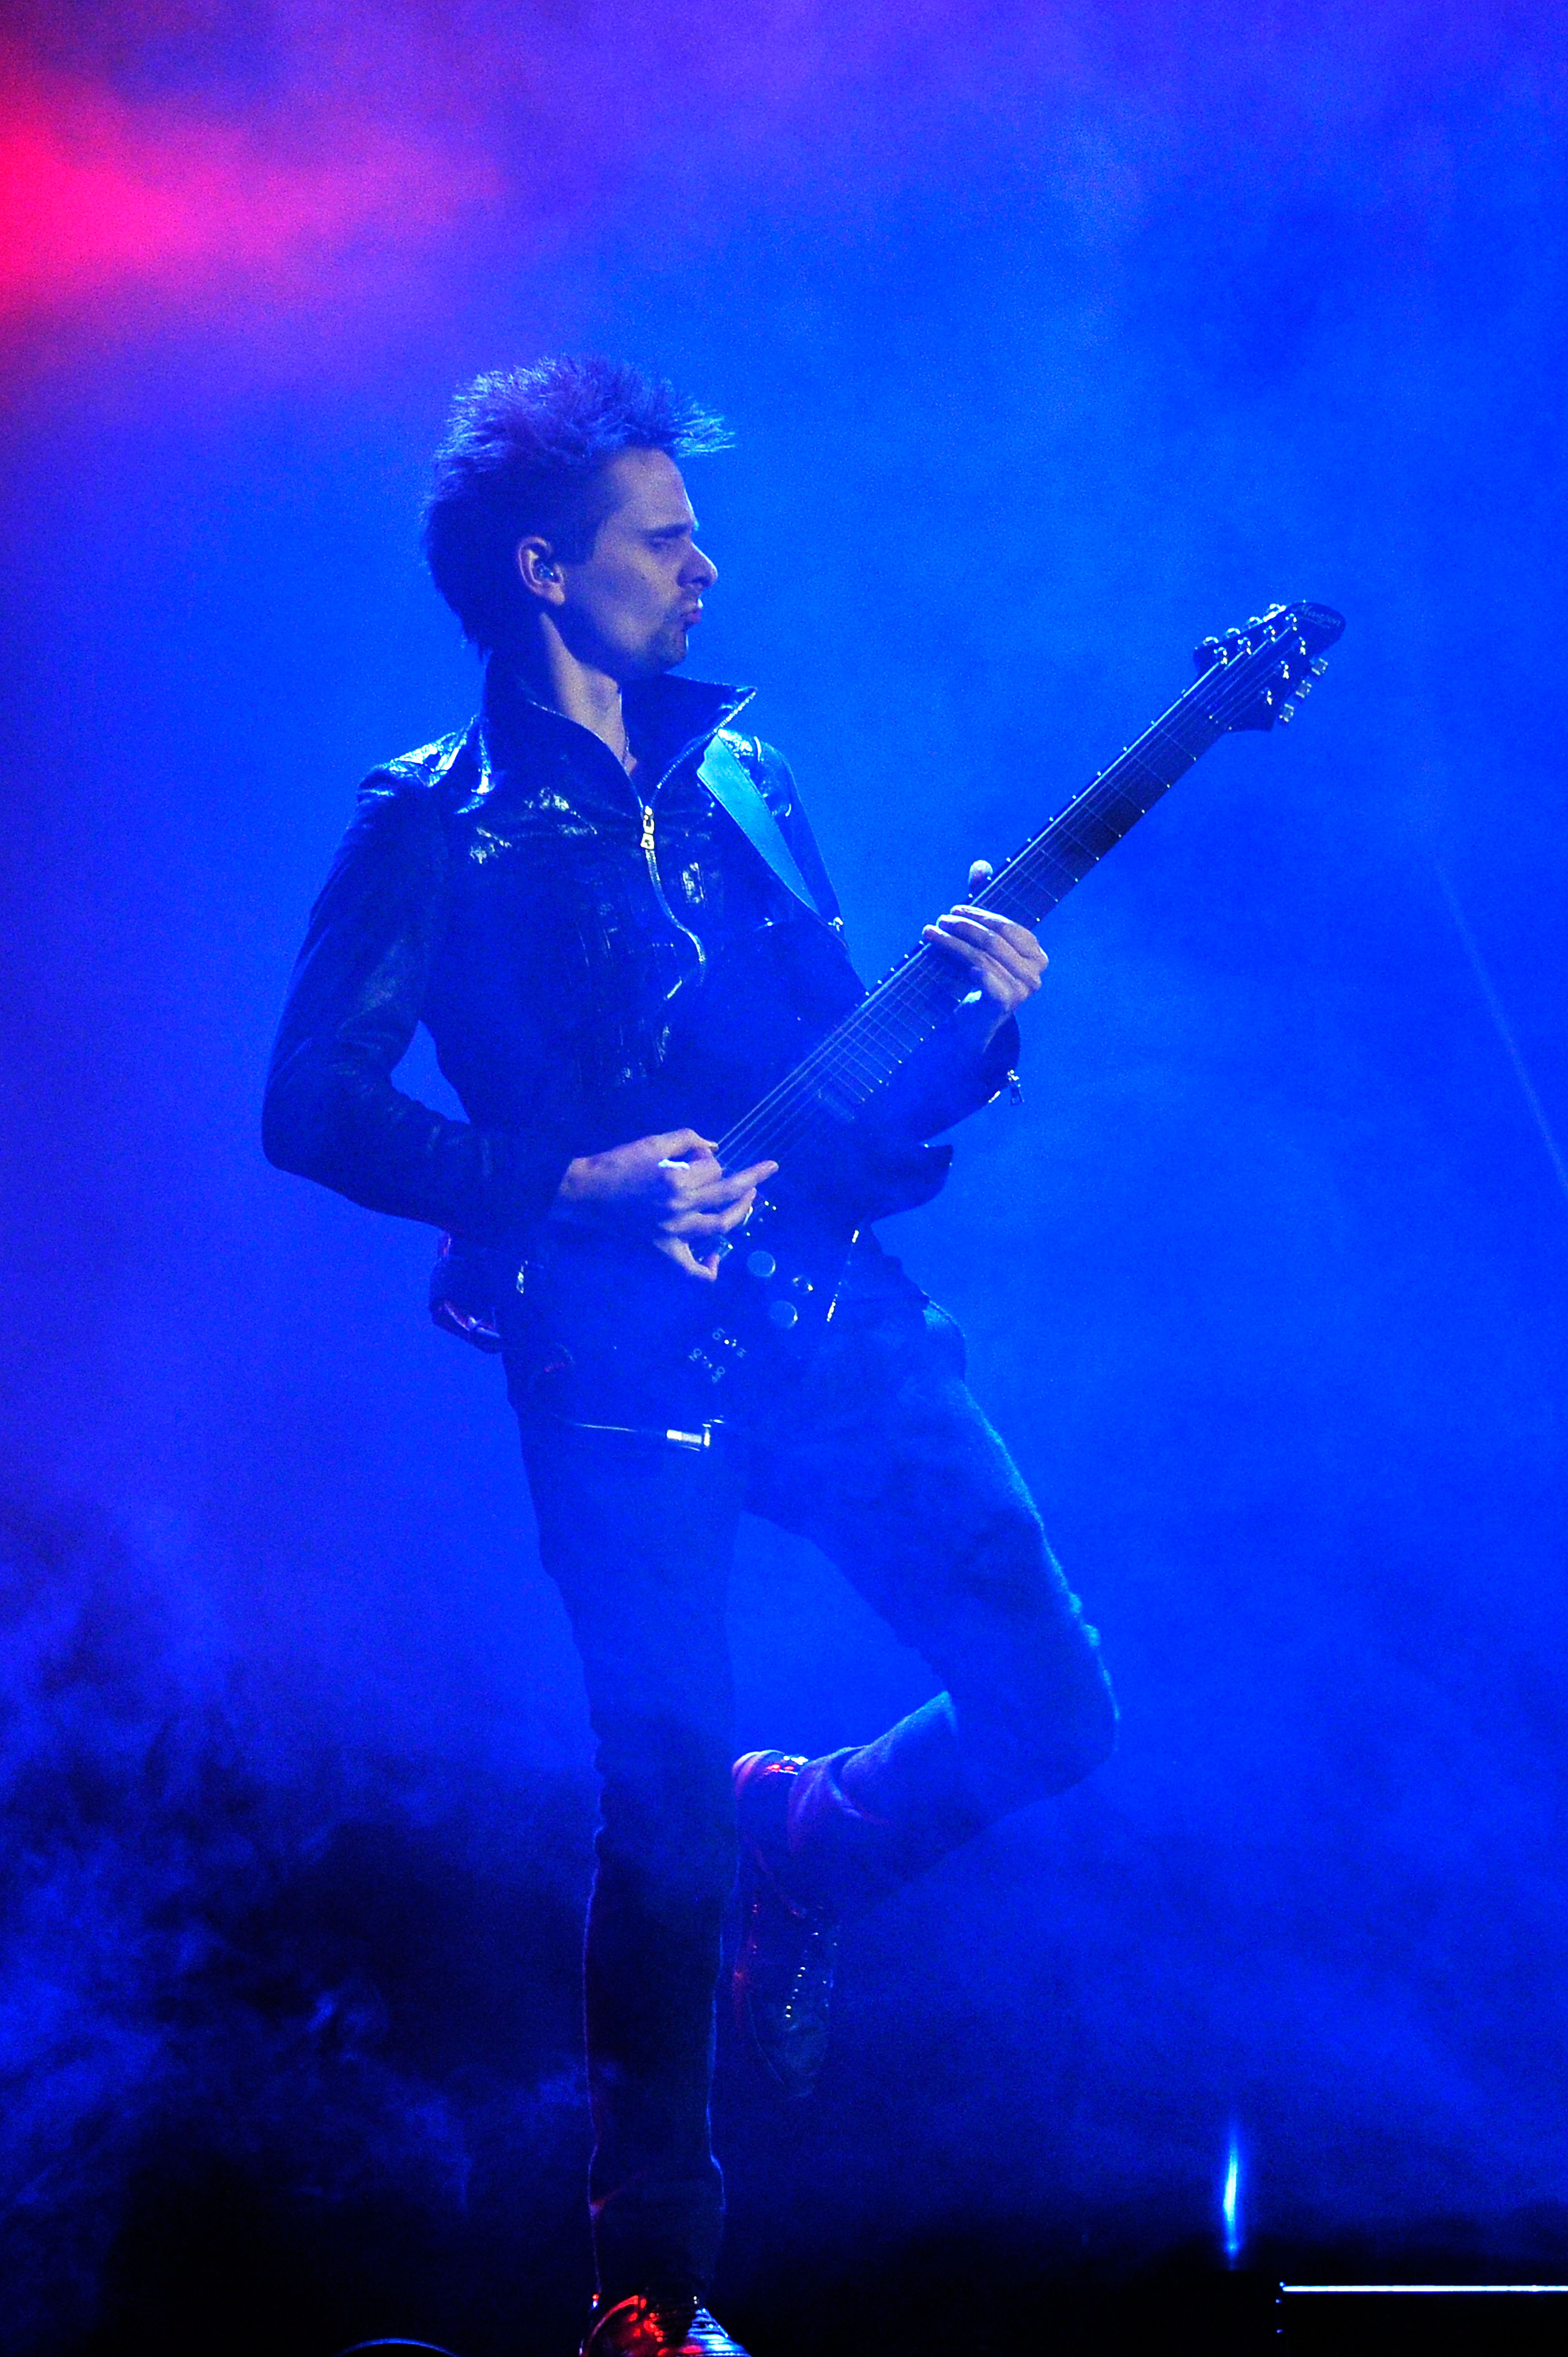 Matthew Bellamy rocked out on stage.